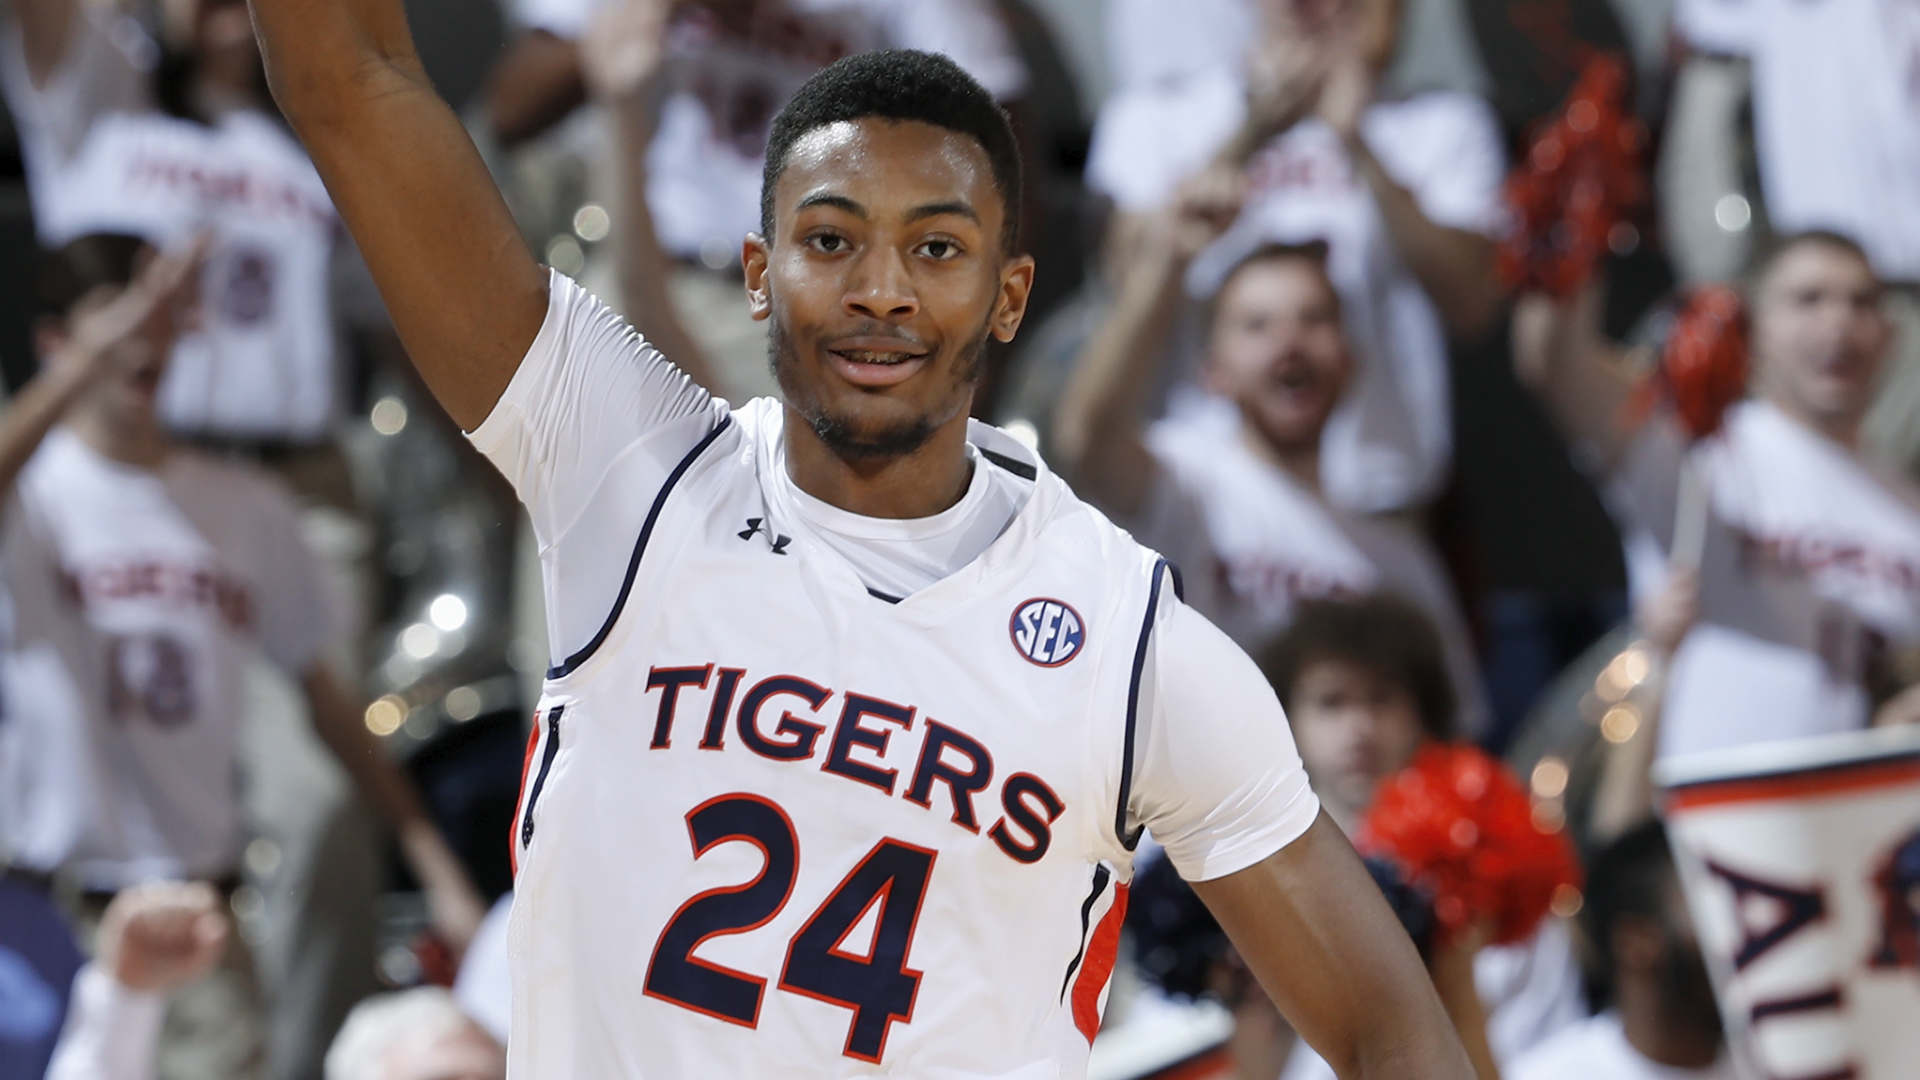 Auburn's Anfernee McLemore Stretchered Off Court After Horrific Ankle Injury